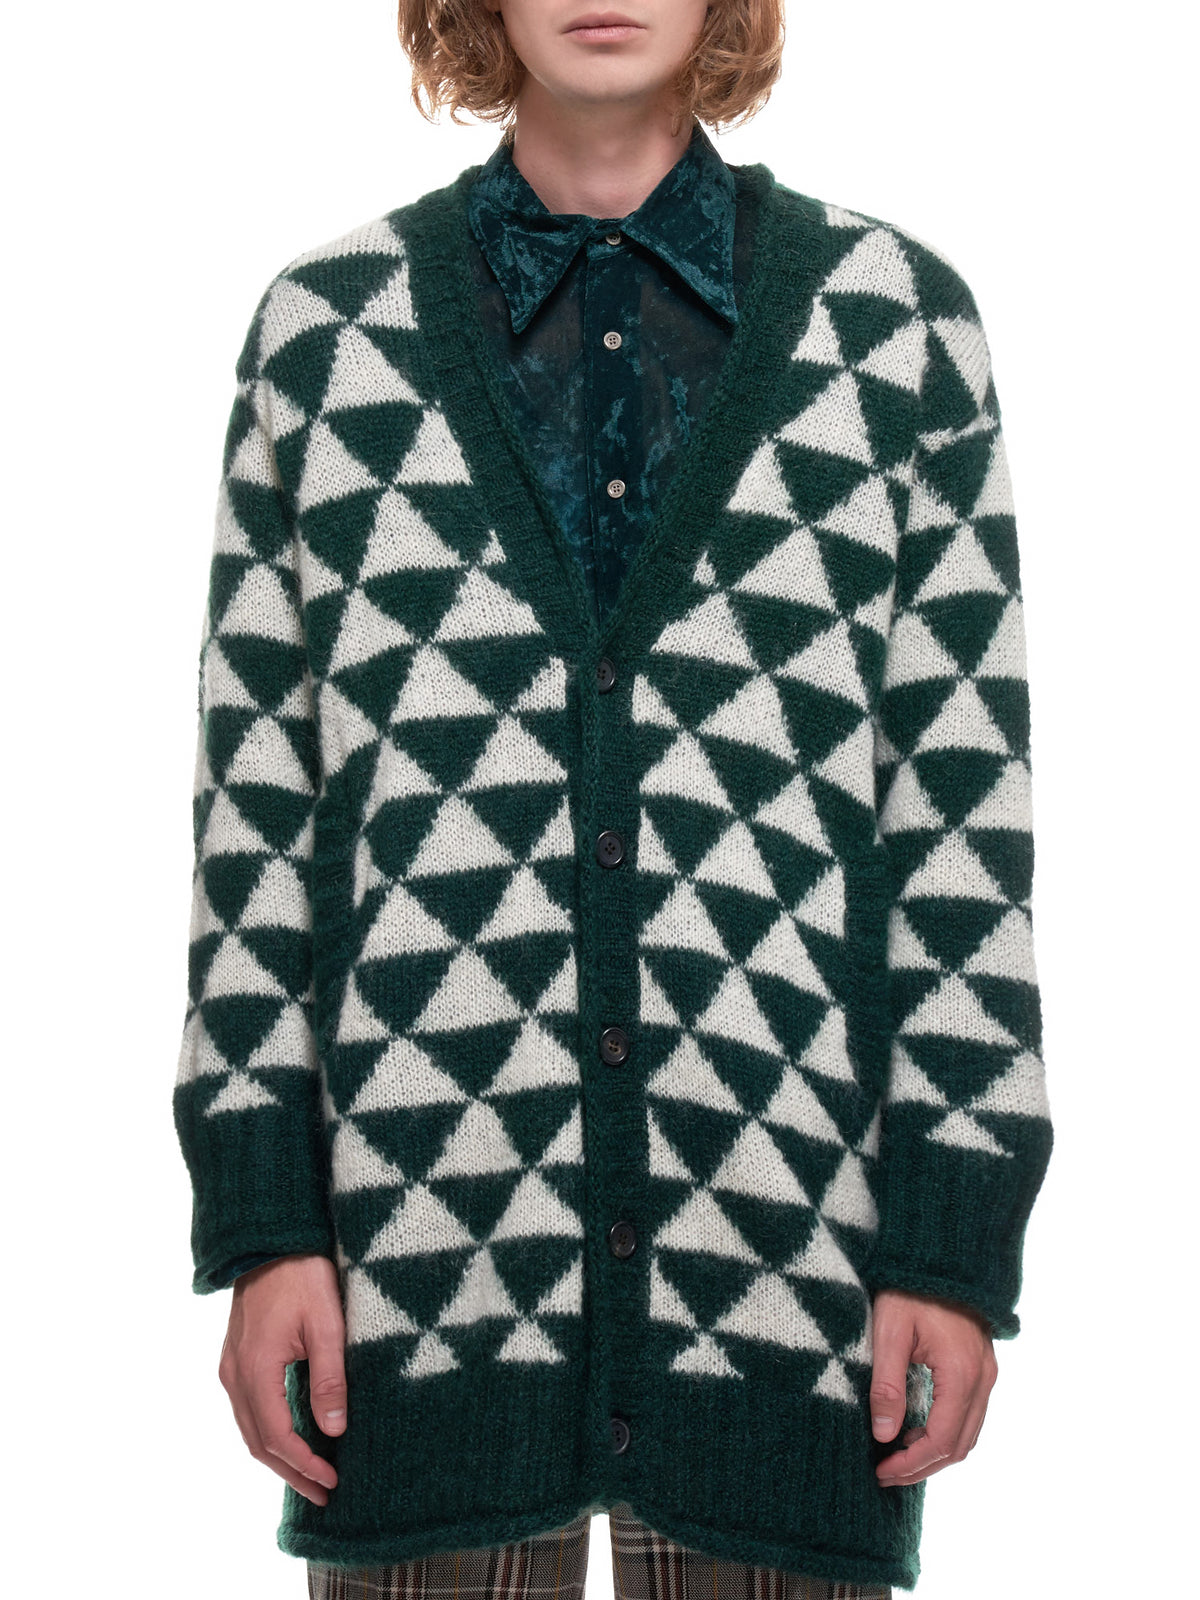 Mohair Wool Cardigan Sweater (UCZ4902-1-GREEN)